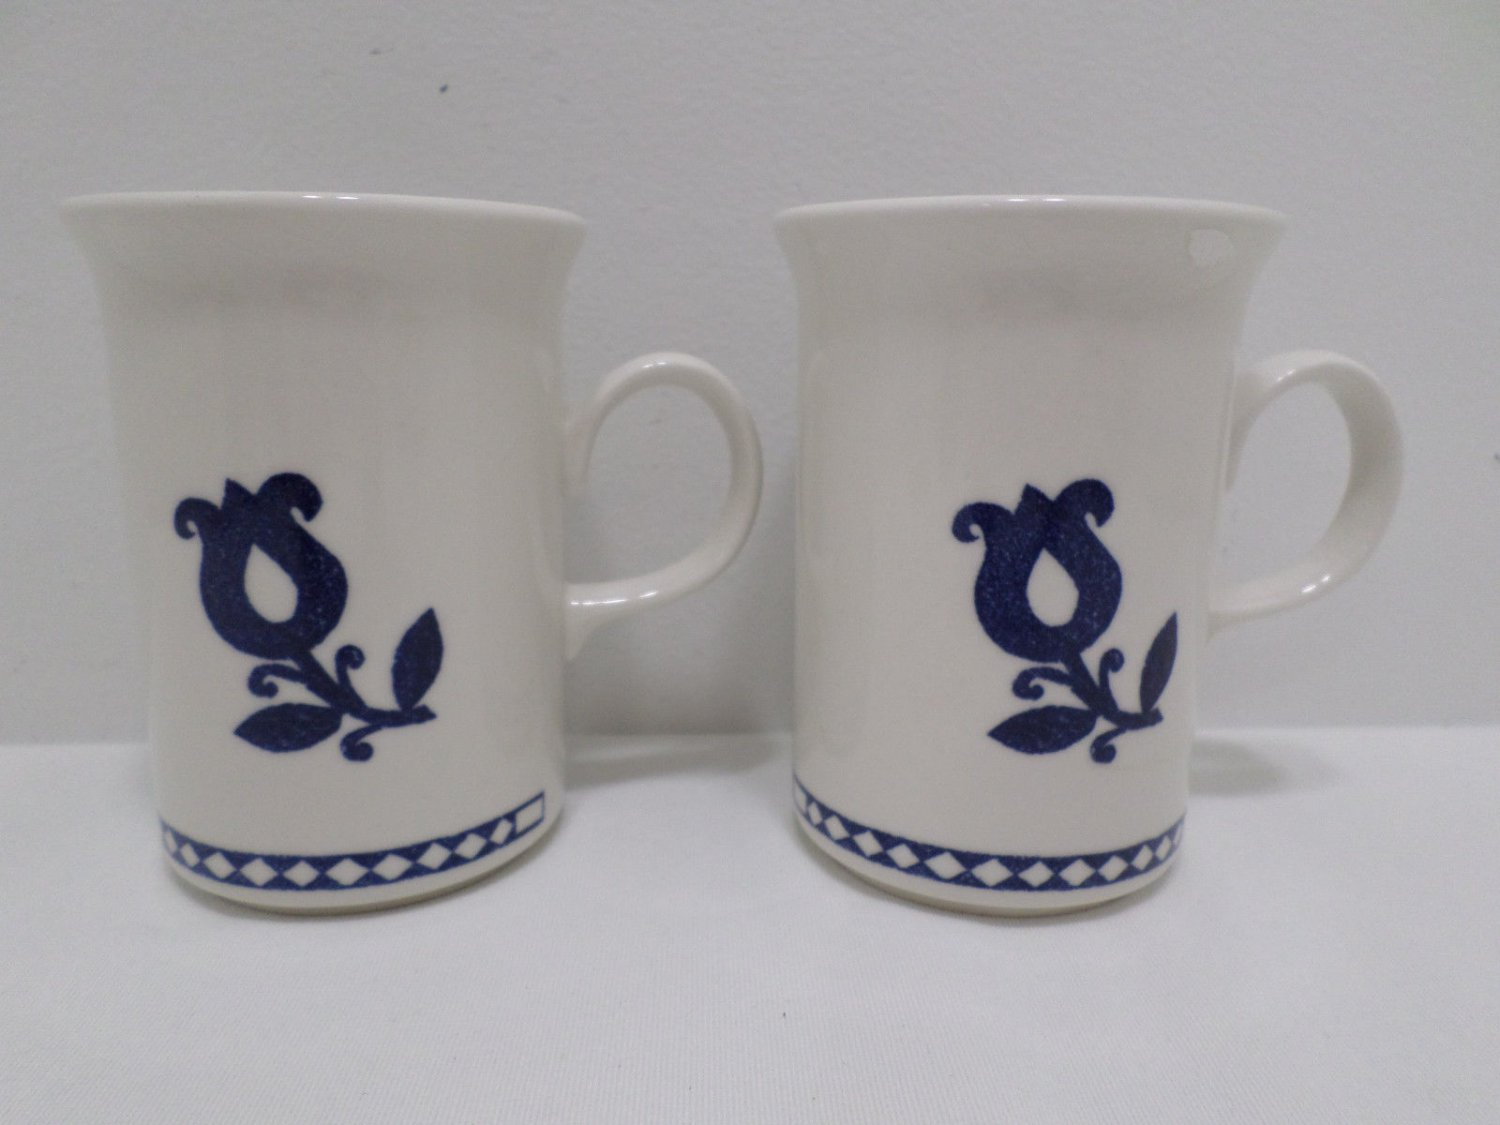 Collector Coffee Mugs  by Churchill made in England White with Blue Flower 2 pcs